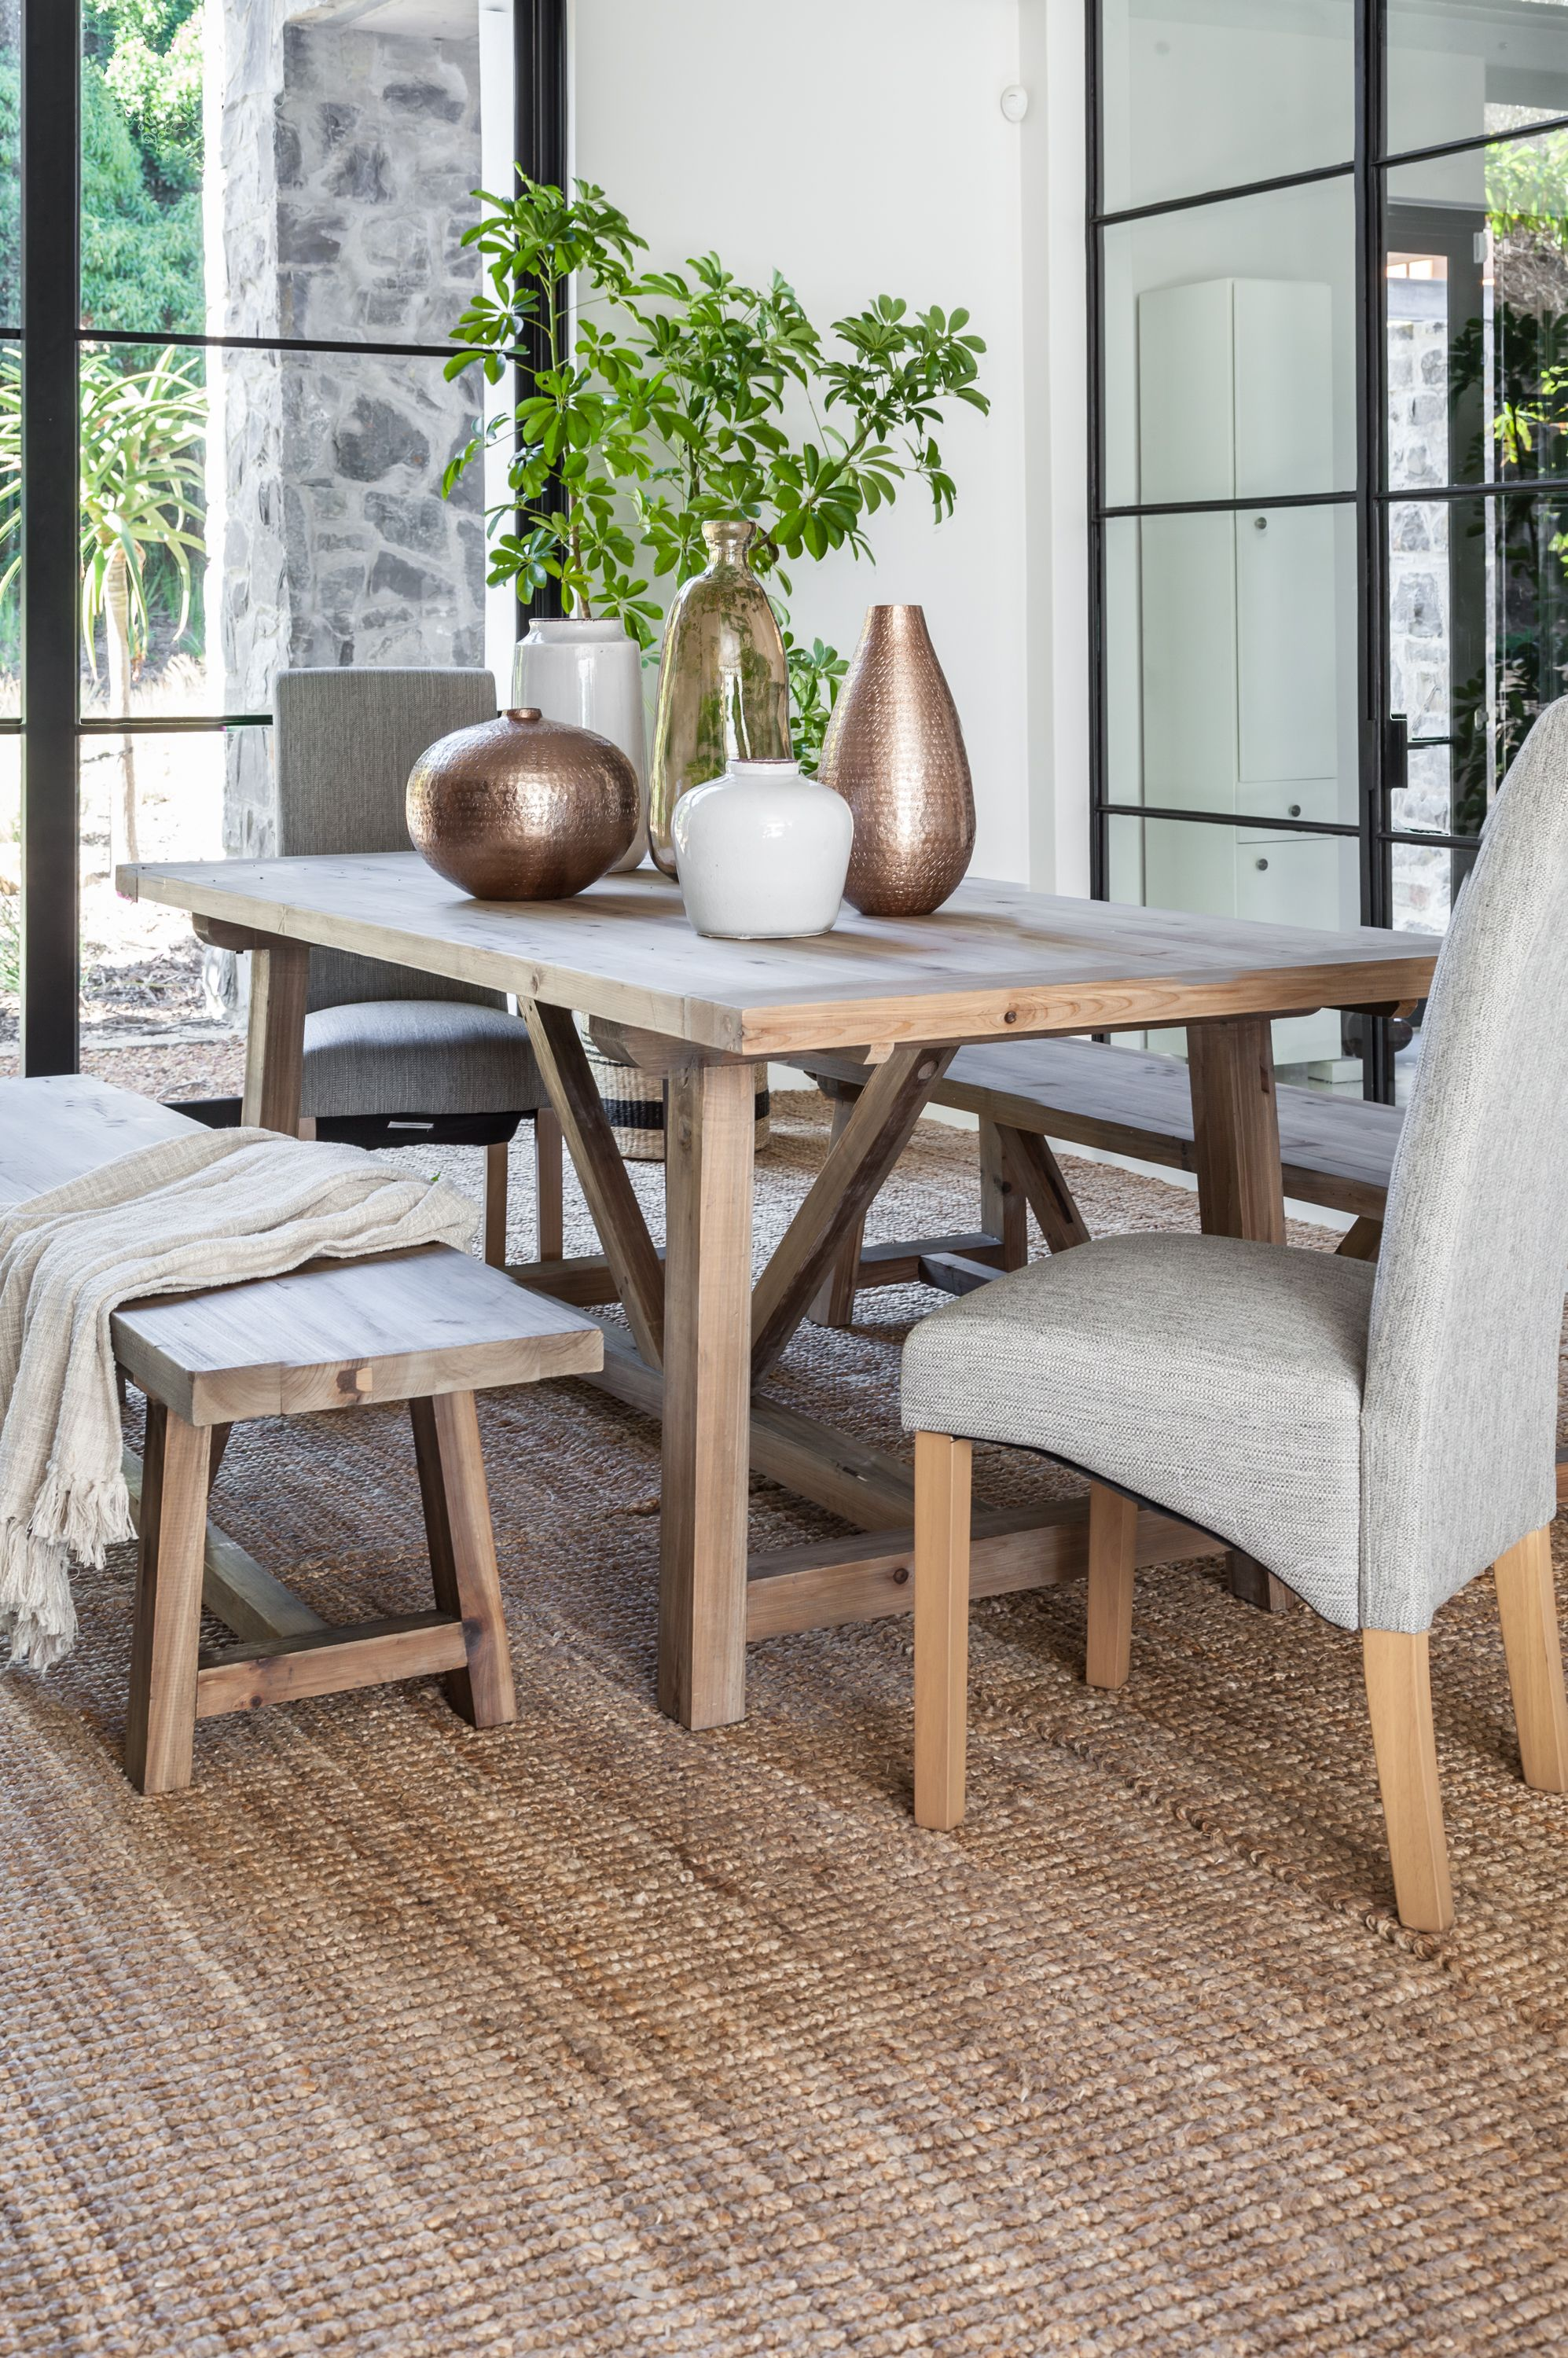 Orlando Sedie The Lightwood Thomas Dining Table Has An Earthy Look And Feel And